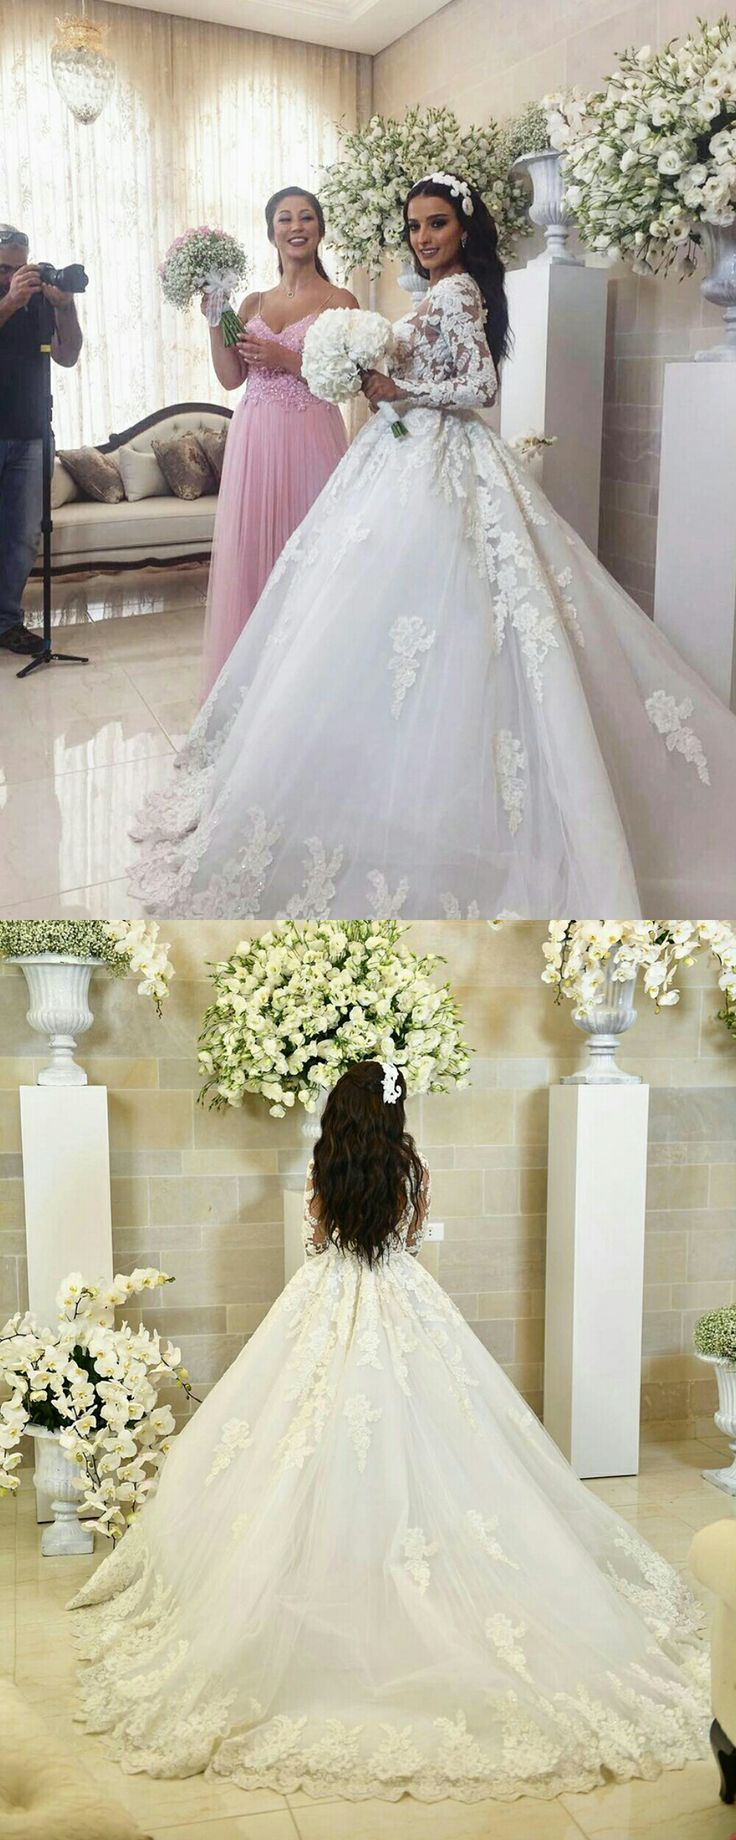 Vintage Lace Long Sleeves Ball Gown Wedding Dresses 2018 · prom ...